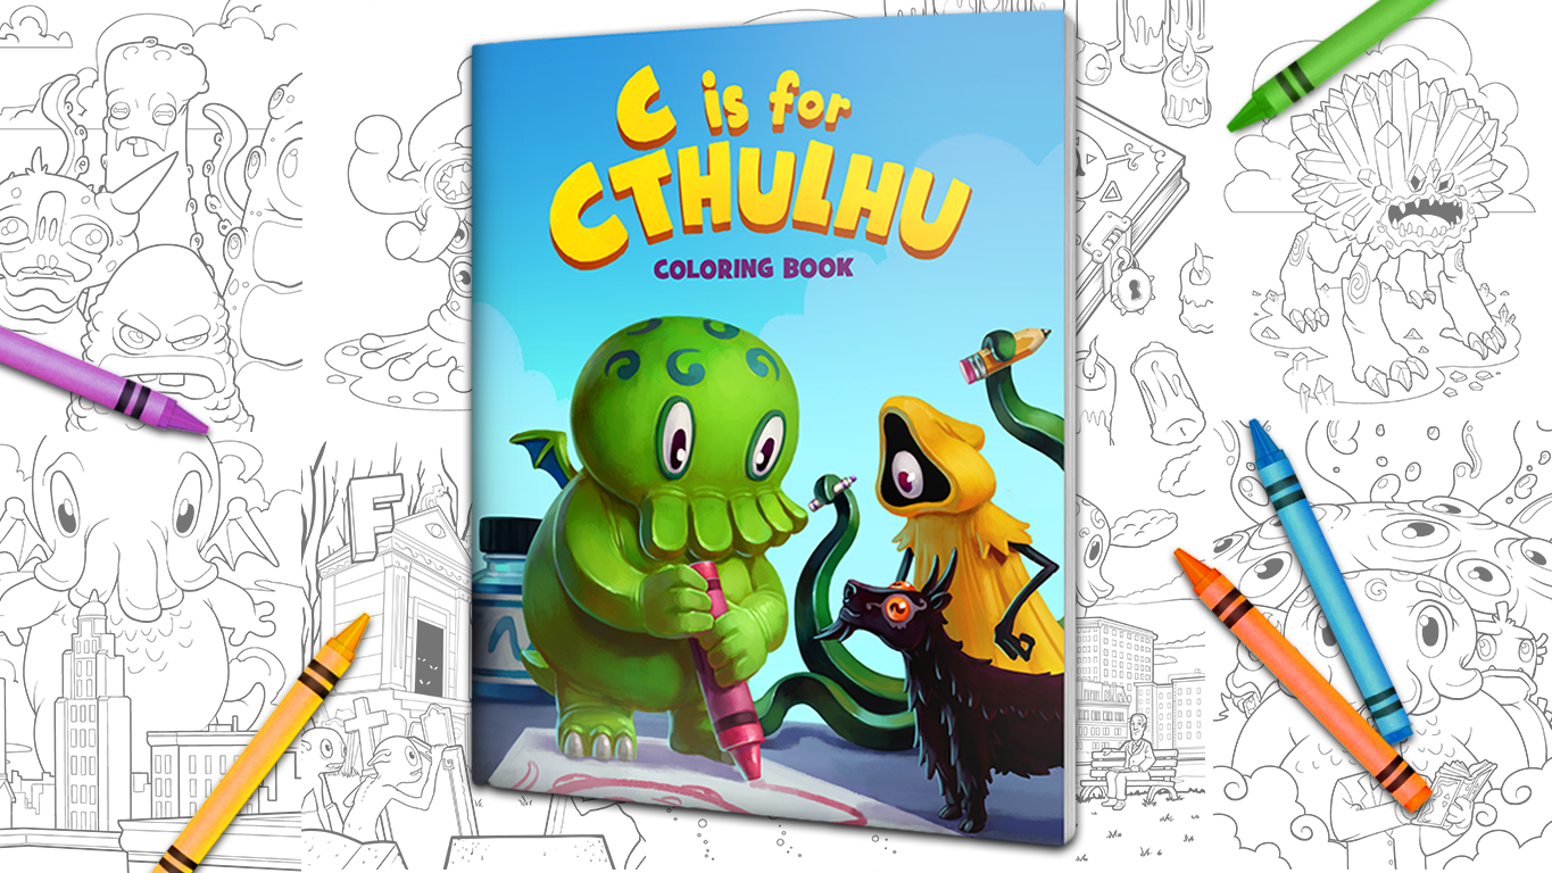 Share the Lovecraft with your little monsters by coloring Cthulhu, Hastur, H.P. and more in this creepy and cuddly coloring book.